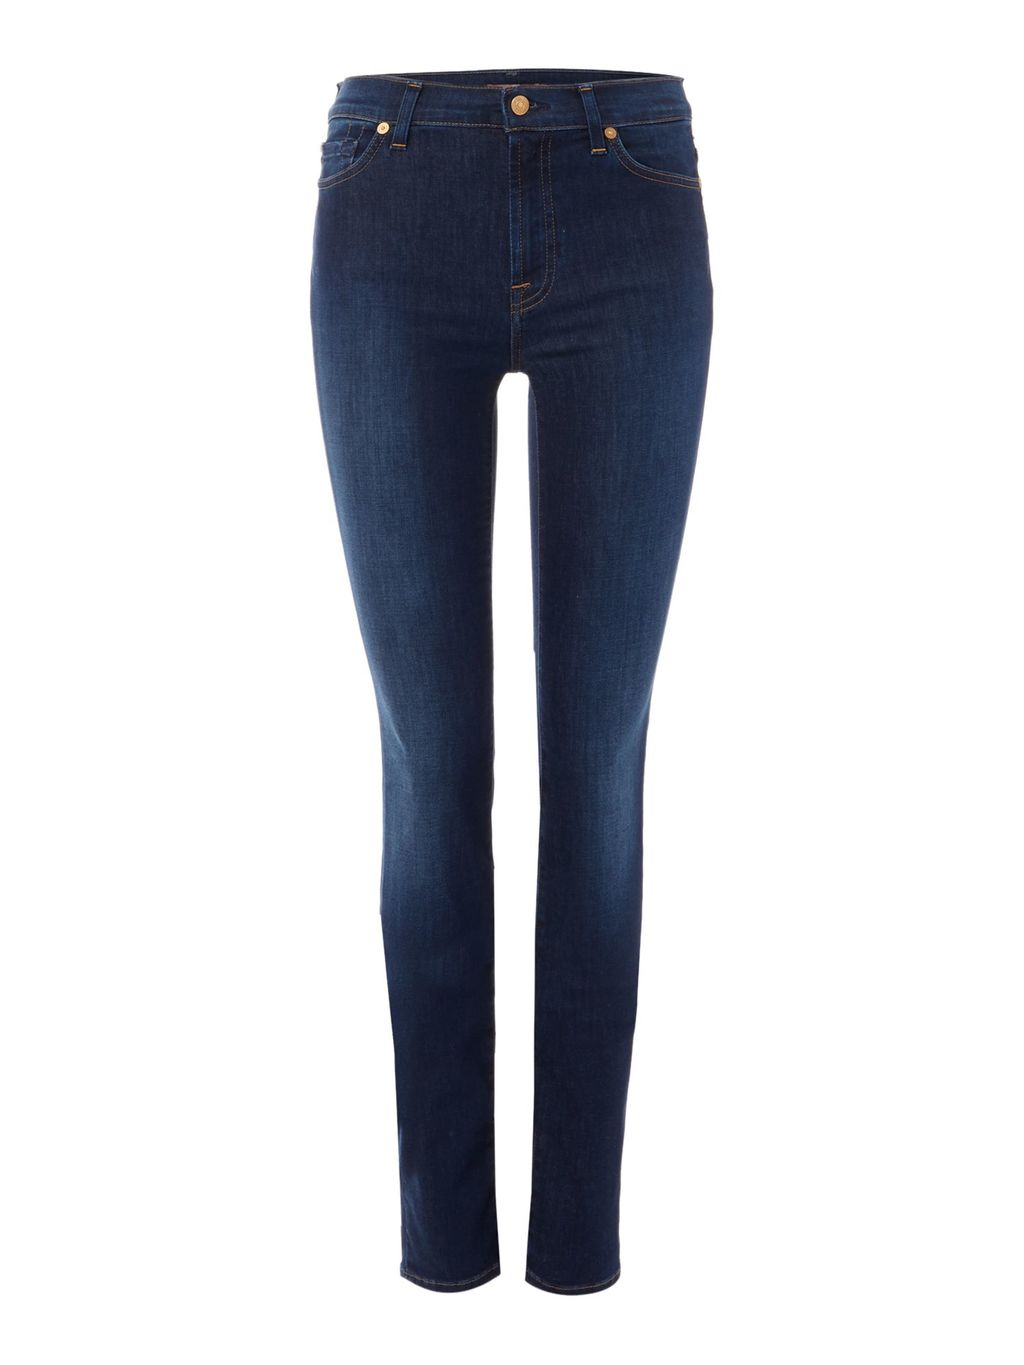 Rozie High Rise Skinny Jeans In Long Boston Blue, Denim Mid Wash - style: skinny leg; length: standard; pattern: plain; waist: high rise; pocket detail: traditional 5 pocket; predominant colour: navy; occasions: casual; fibres: cotton - stretch; jeans detail: dark wash; texture group: denim; pattern type: fabric; season: a/w 2015